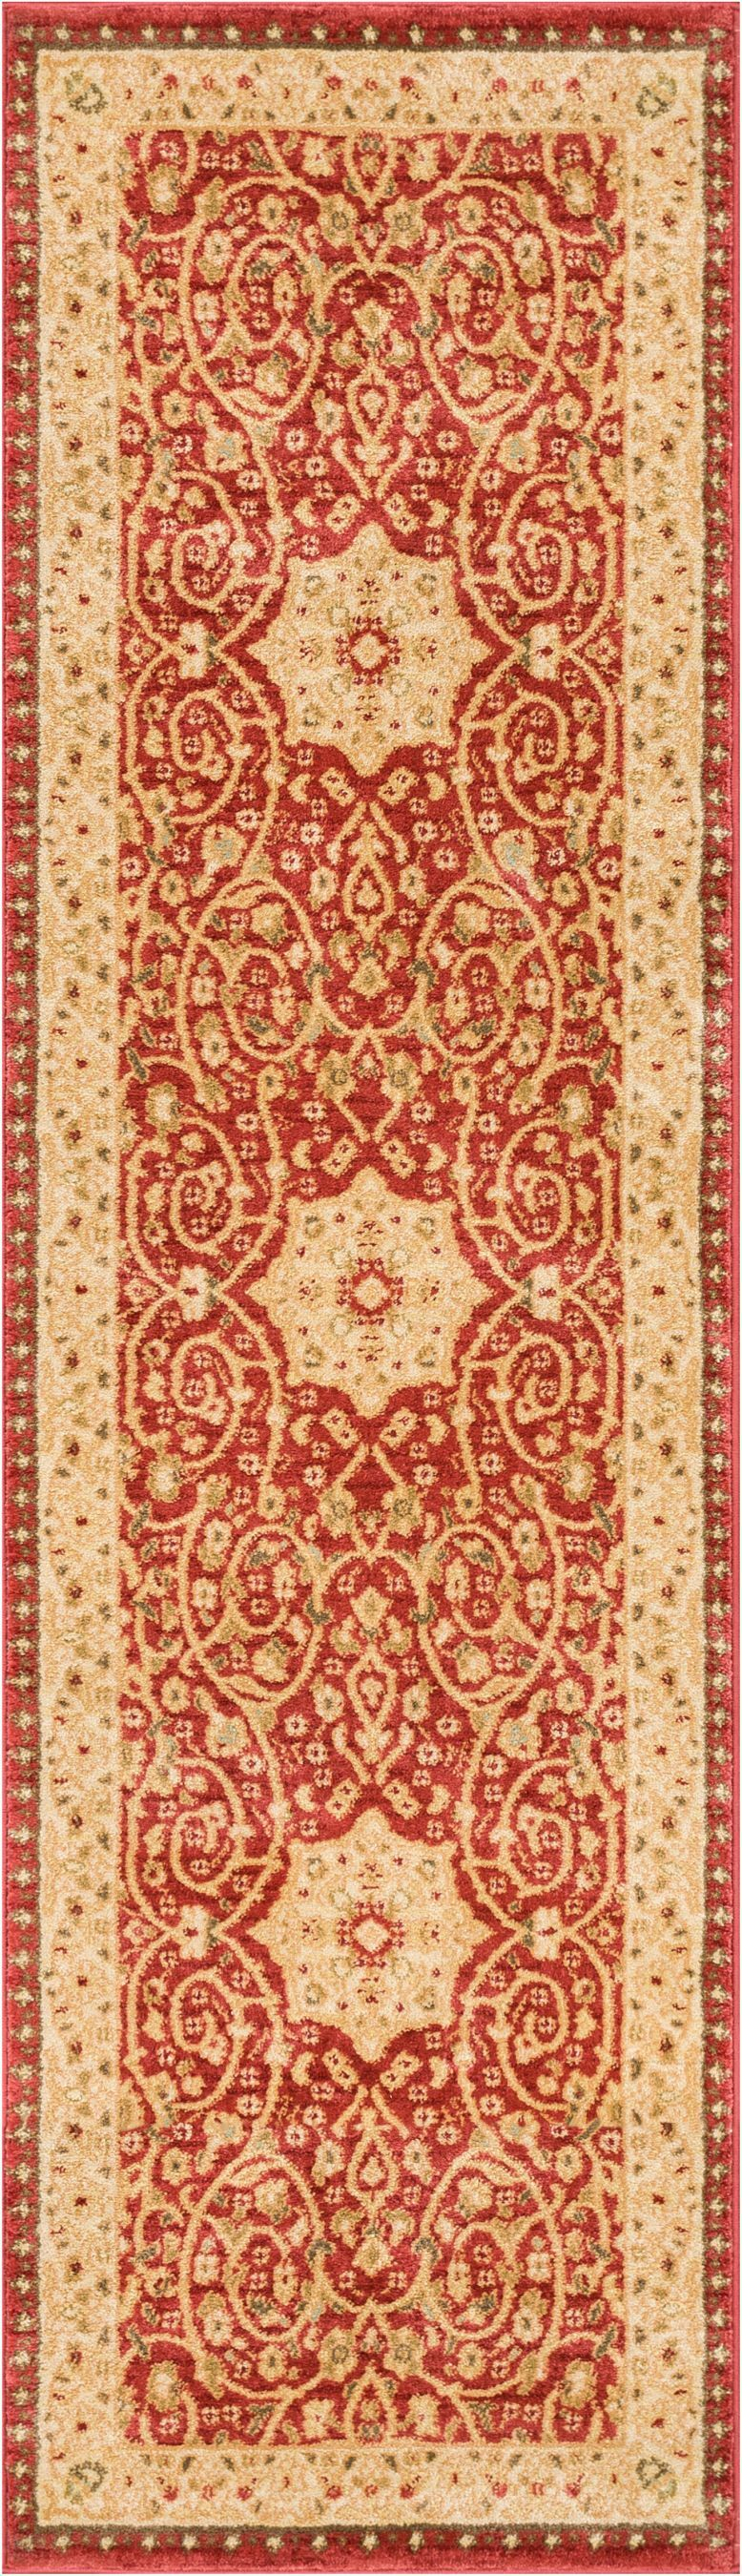 Allerdale Oriental Red/Ivory Area Rug Rug Size: 5'3